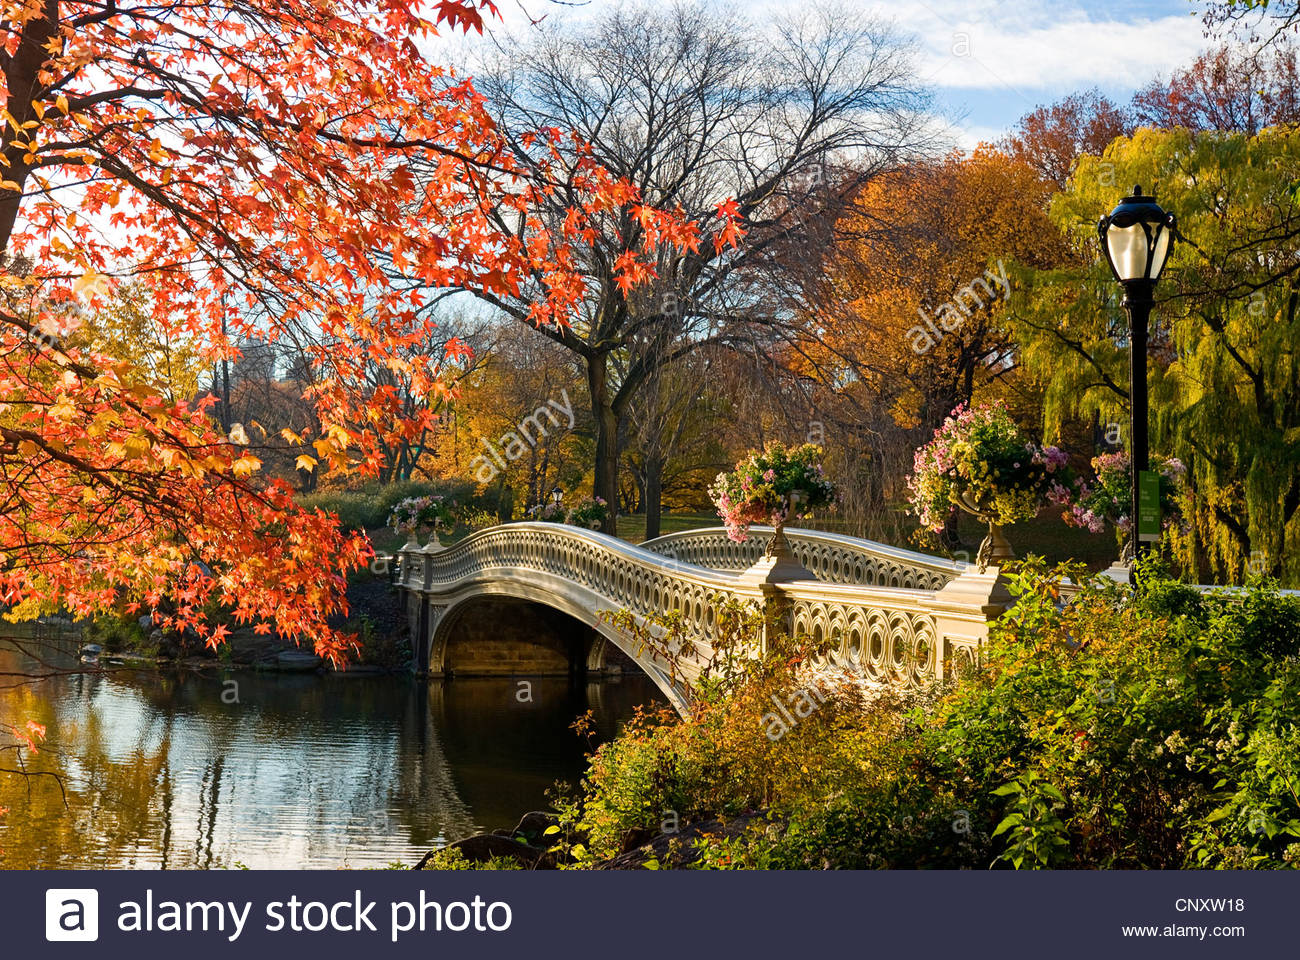 Bow Bridge, Central Park, New York City in Autumn. - Stock Image